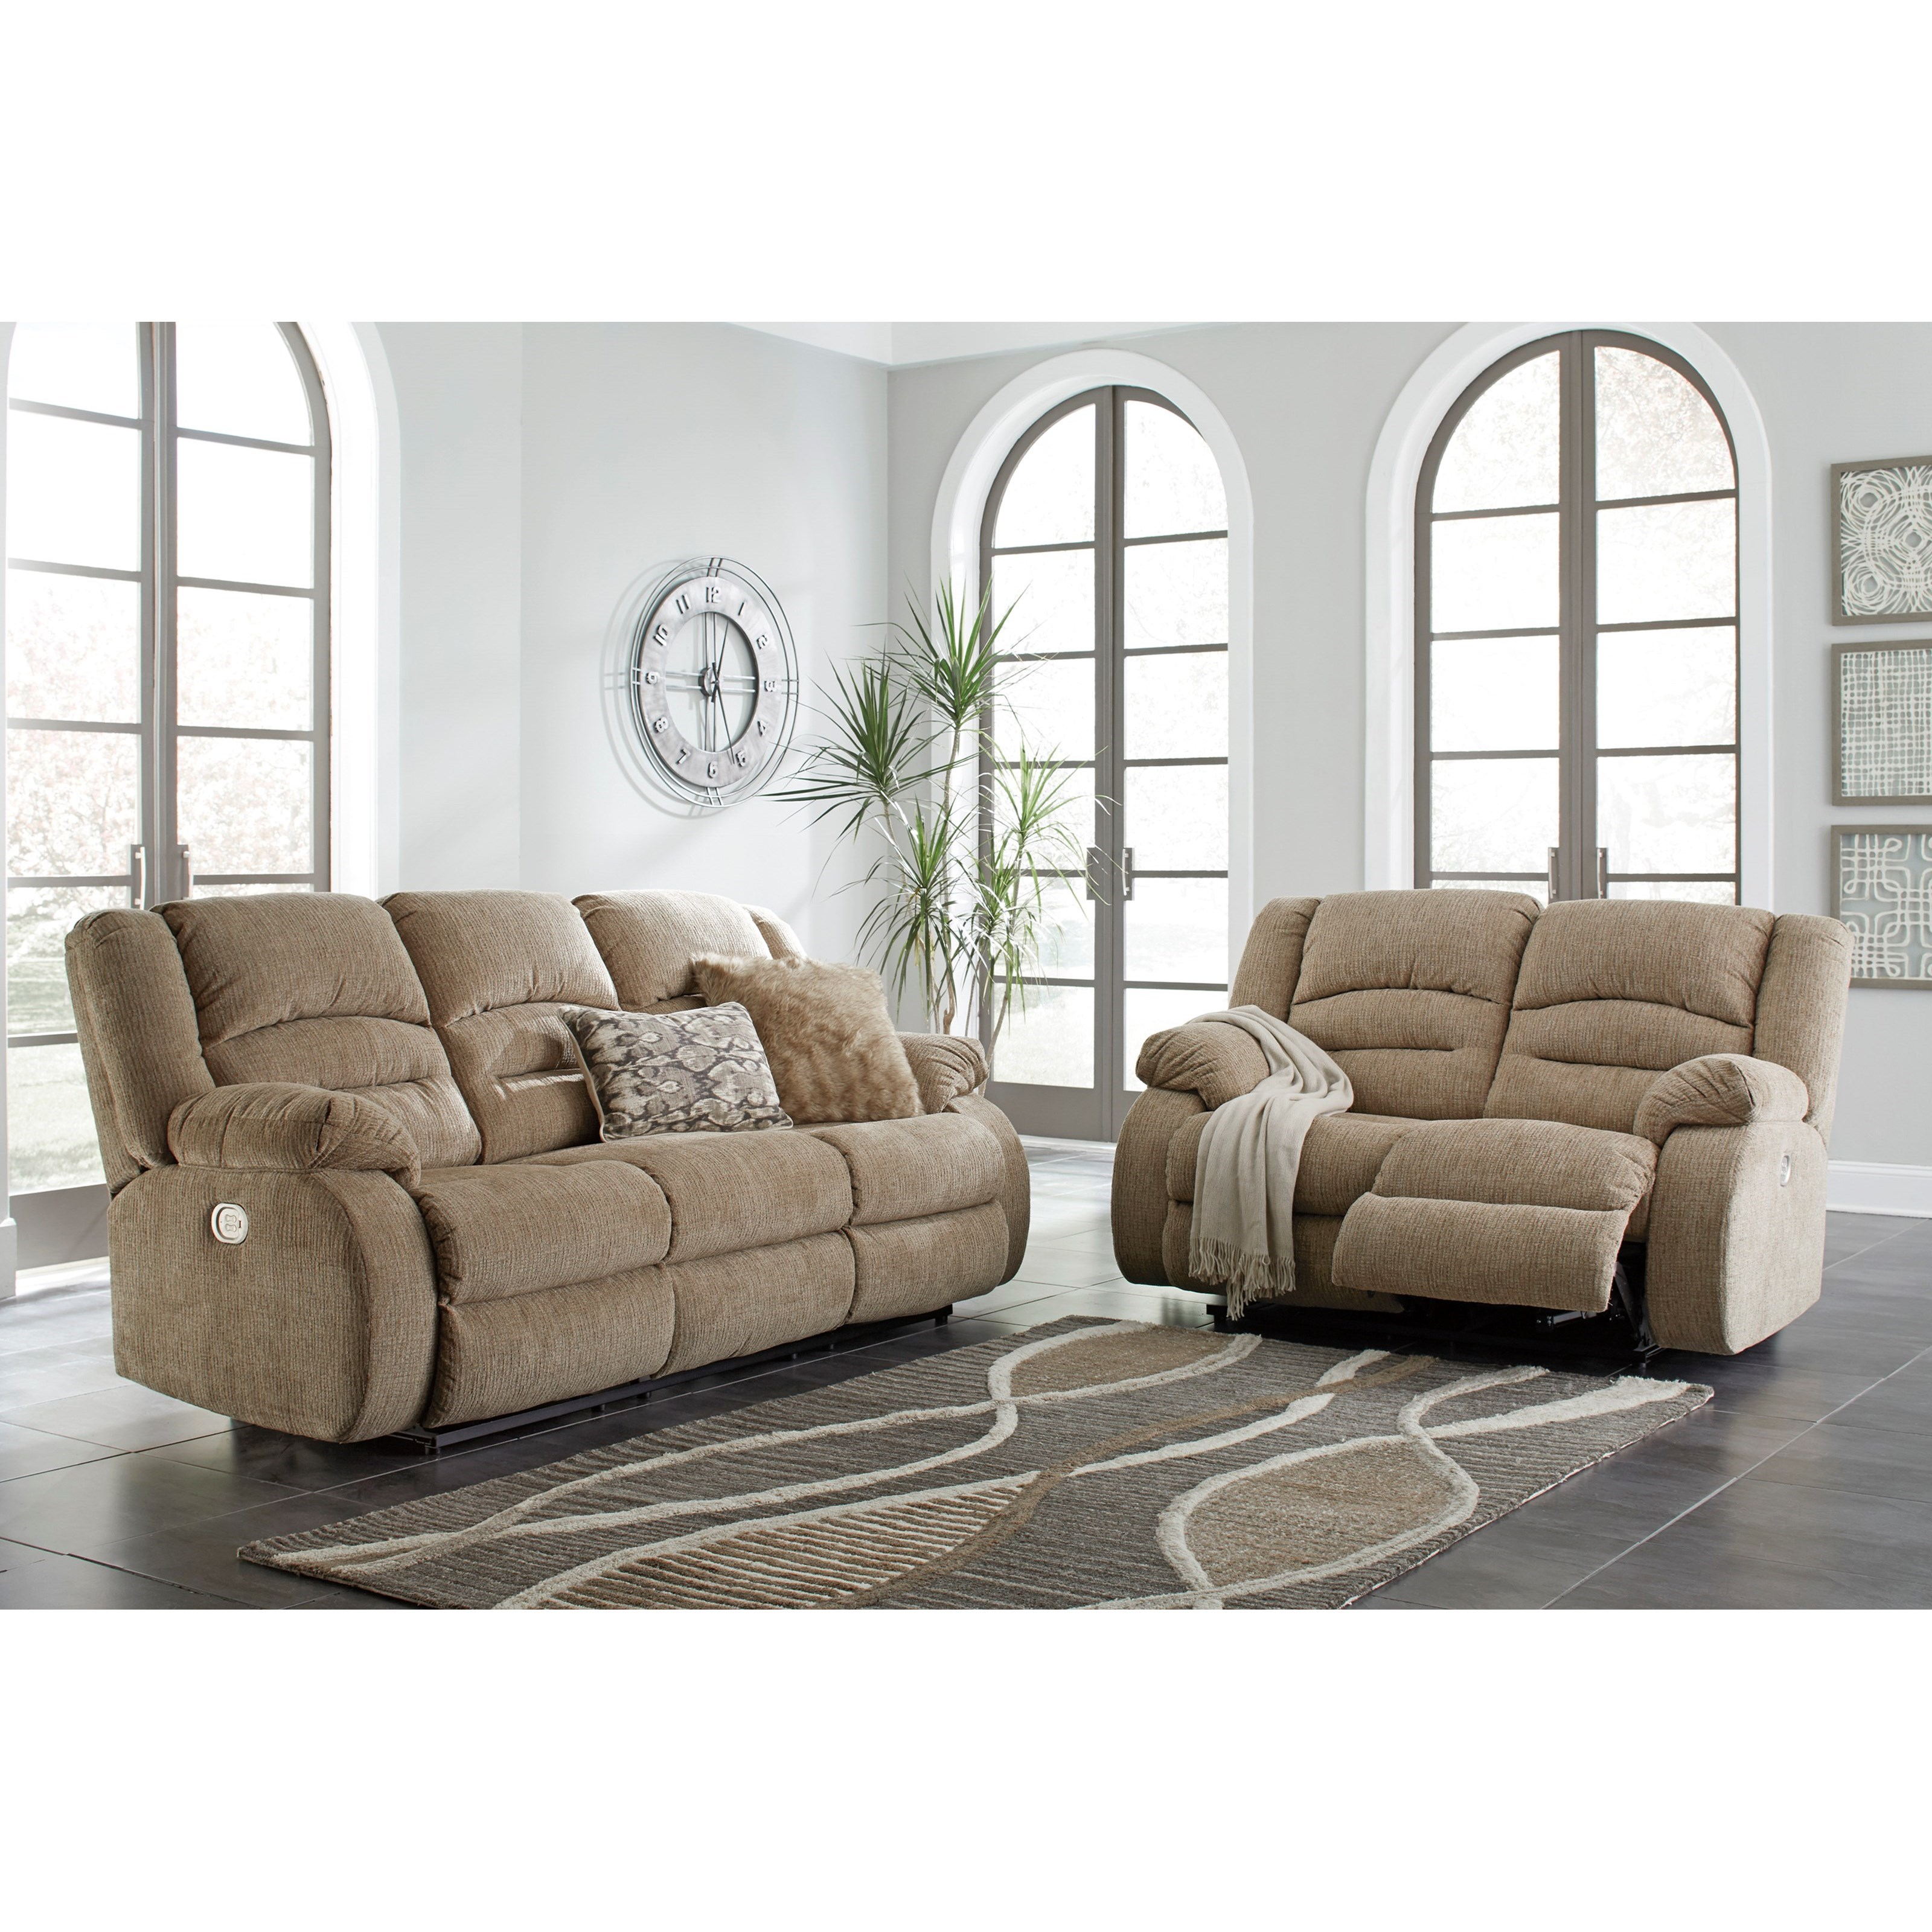 Styleline labarre reclining living room group efo furniture outlet reclining living room groups for Ashley wilkes bedroom collection